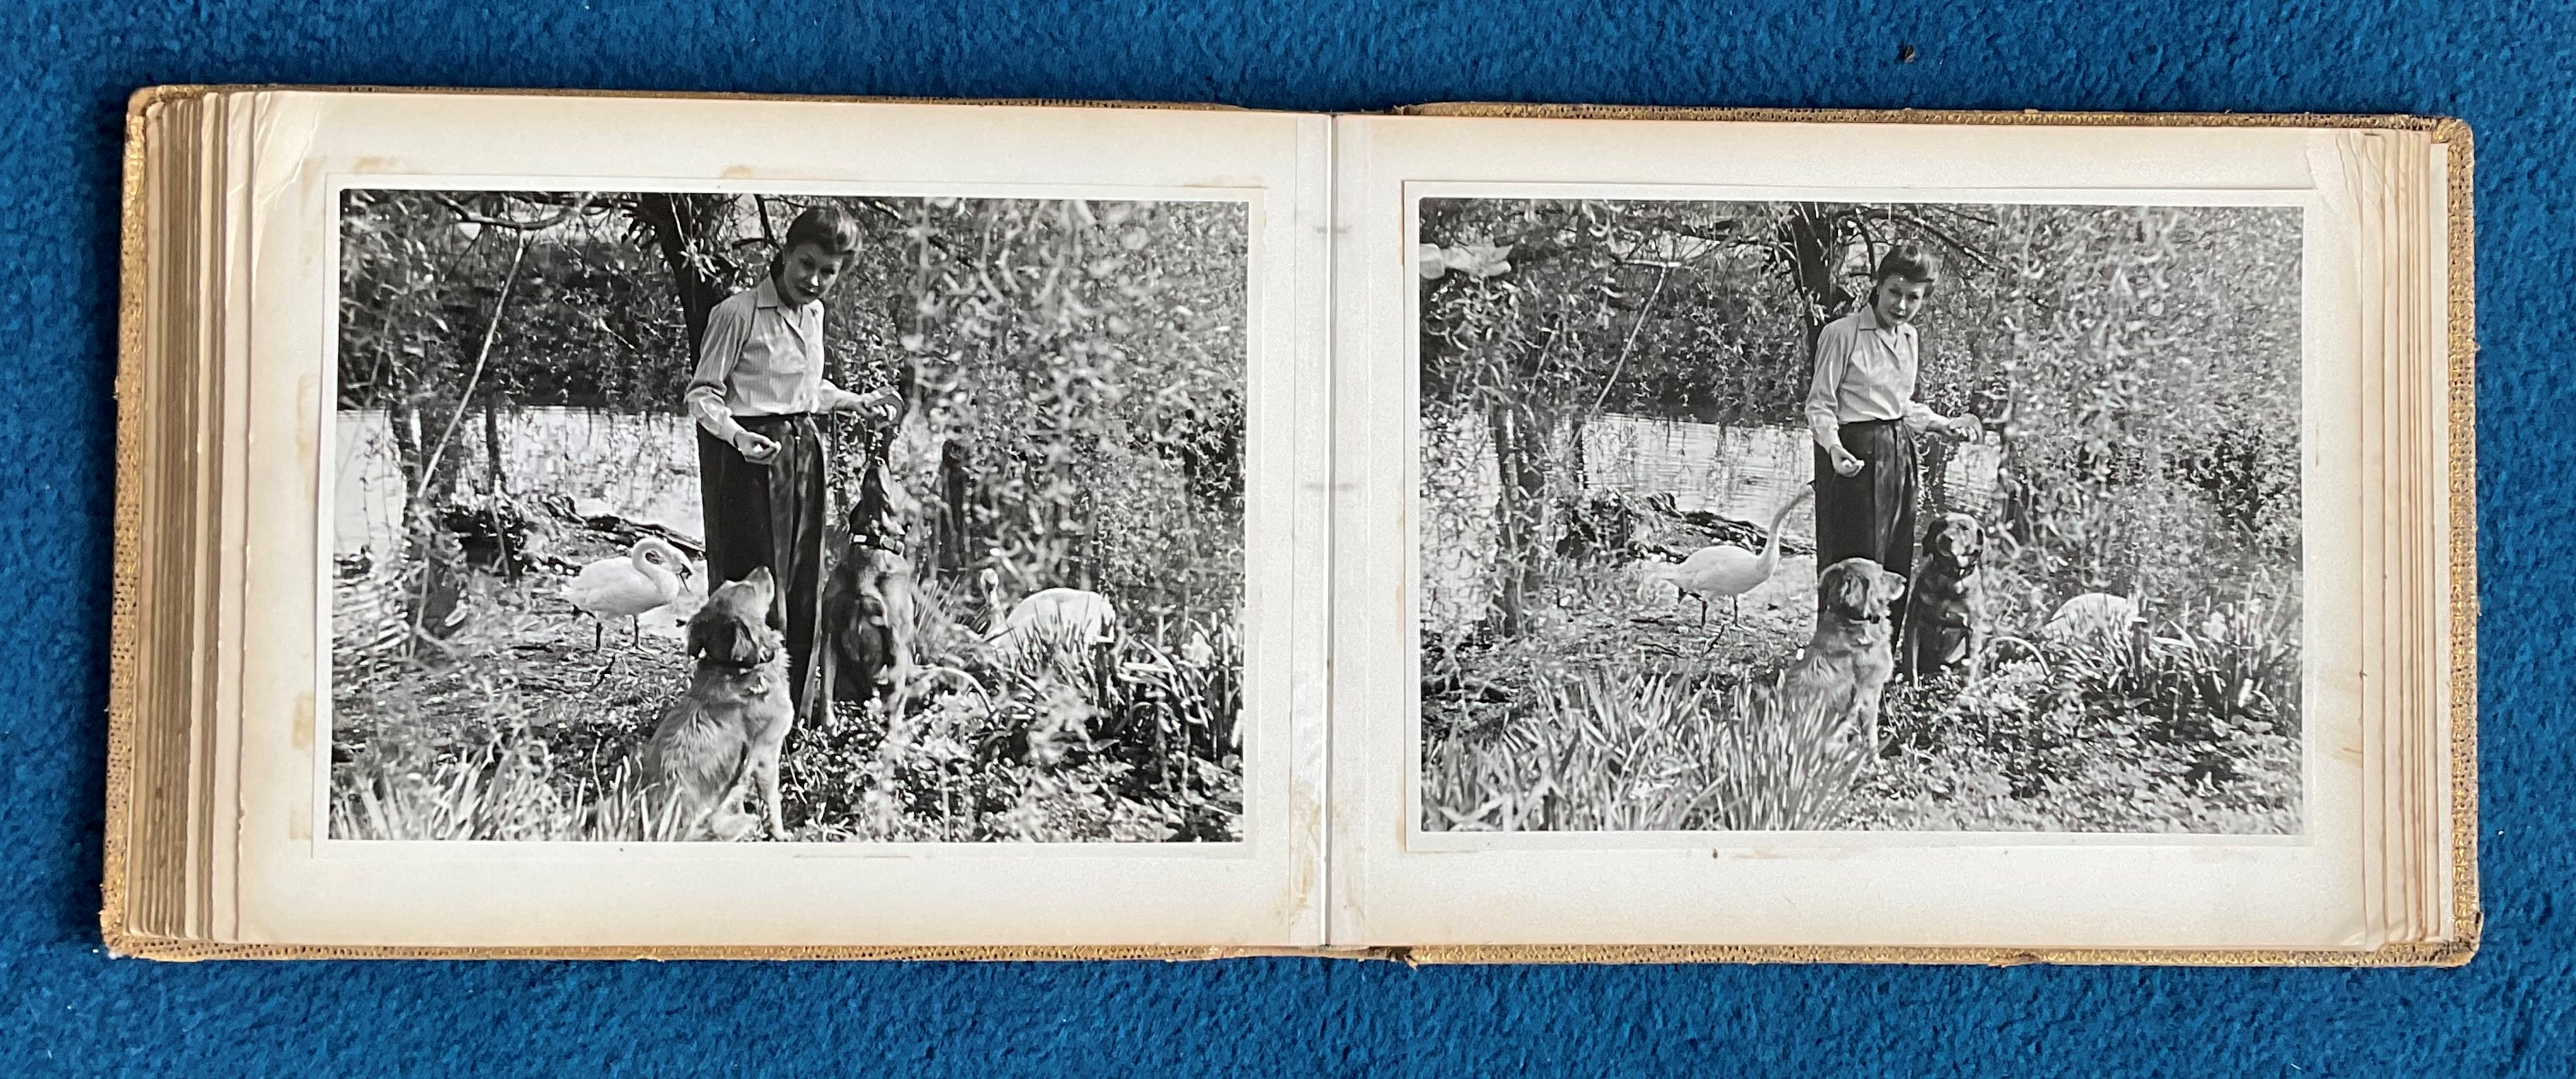 Sir Archibald McIndoe Family Photo Album plus 5 Hardback Books from His personal collection - Image 23 of 23